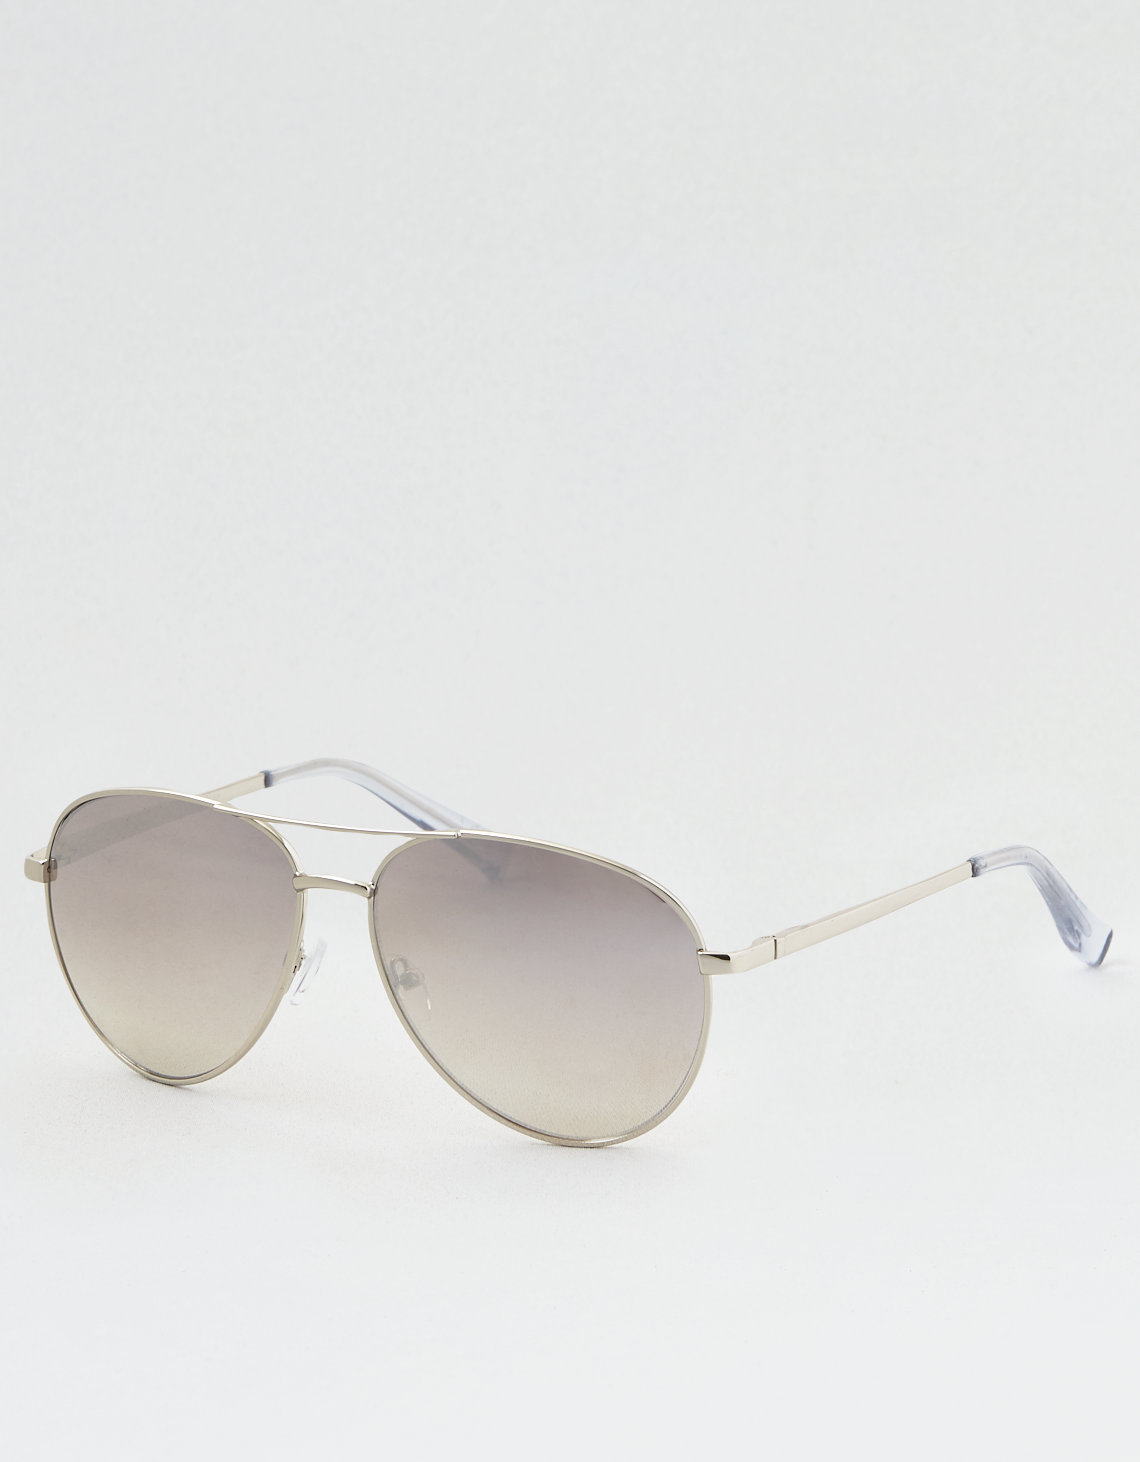 a9d300ee86 AE Aviator Sunglasses. Placeholder image. Product Image